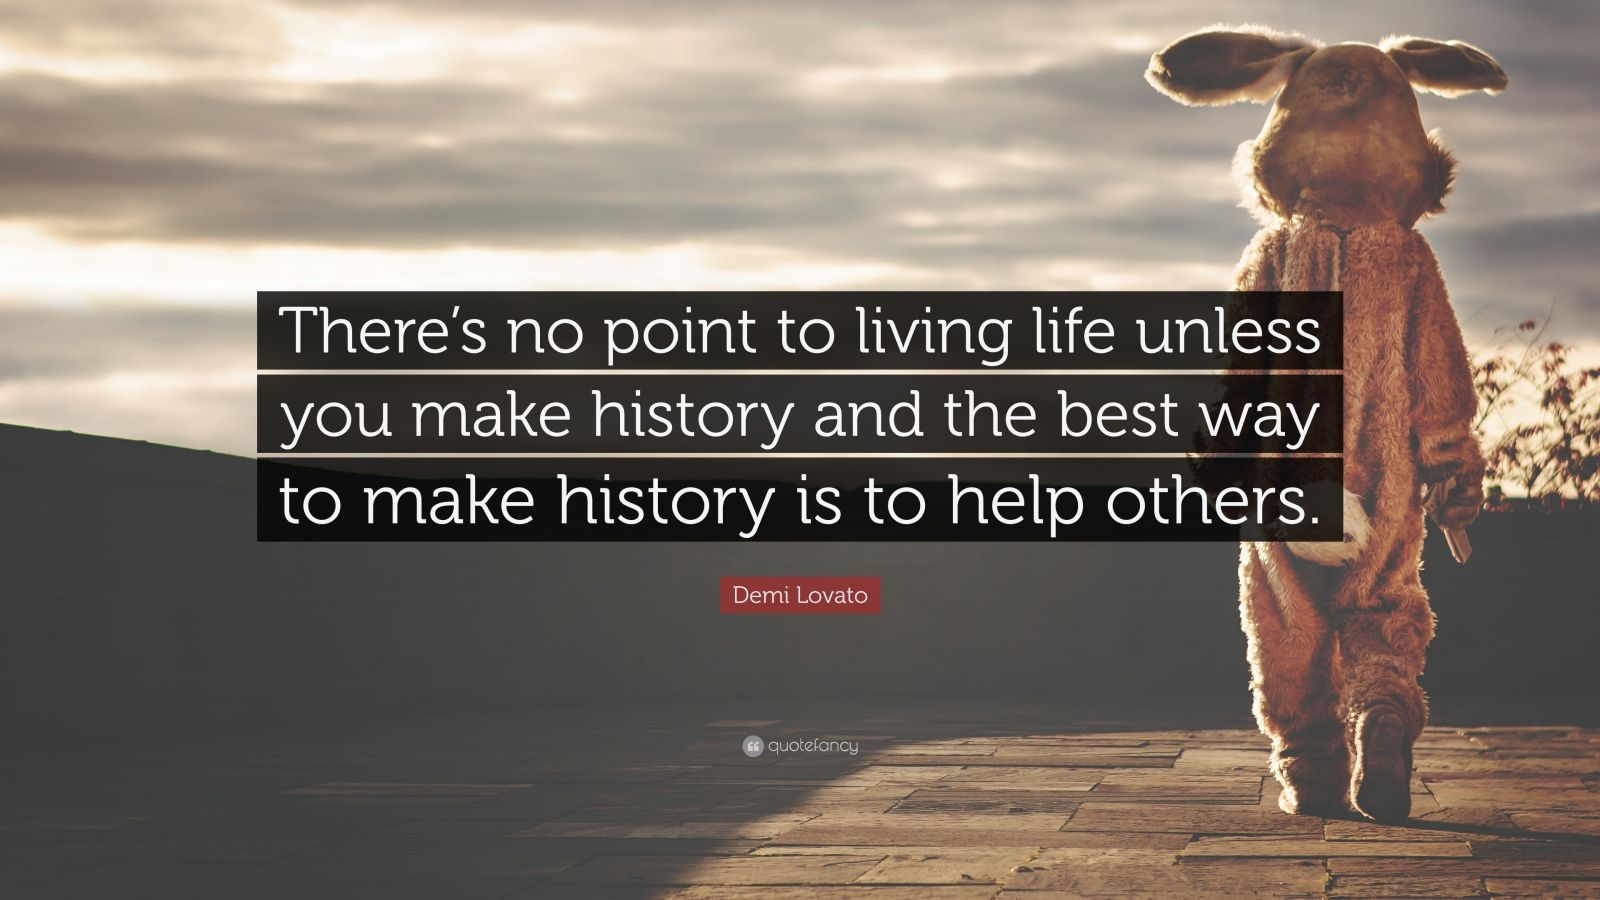 """Demi Lovato Quote: """"There's no point to living life unless you make history and the best way to make history is to help others."""""""